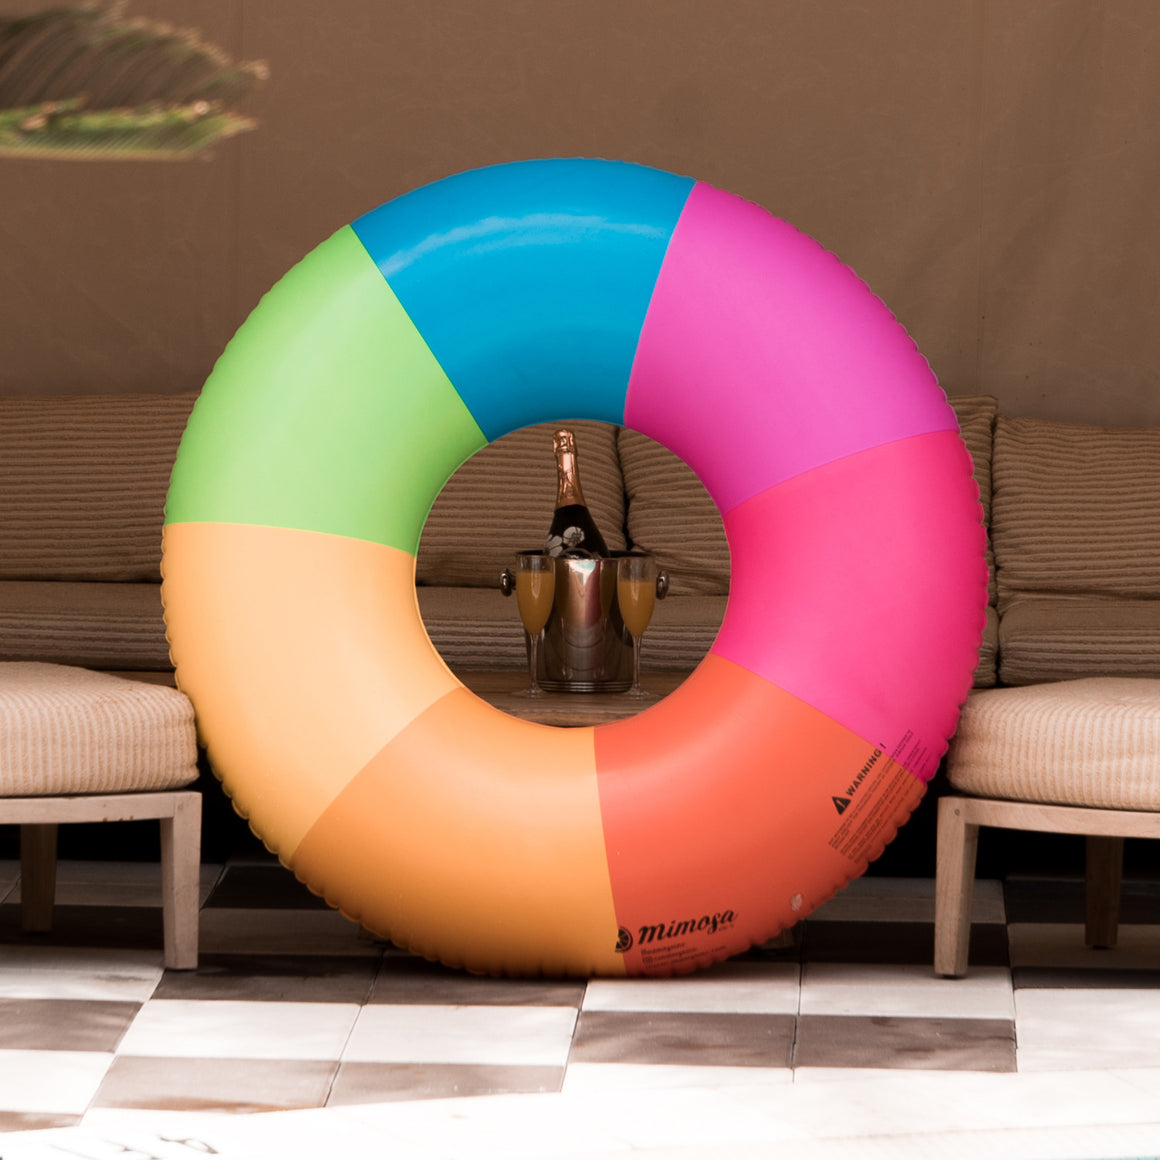 tutti frutti rainbow pool float by Mimosa Inc